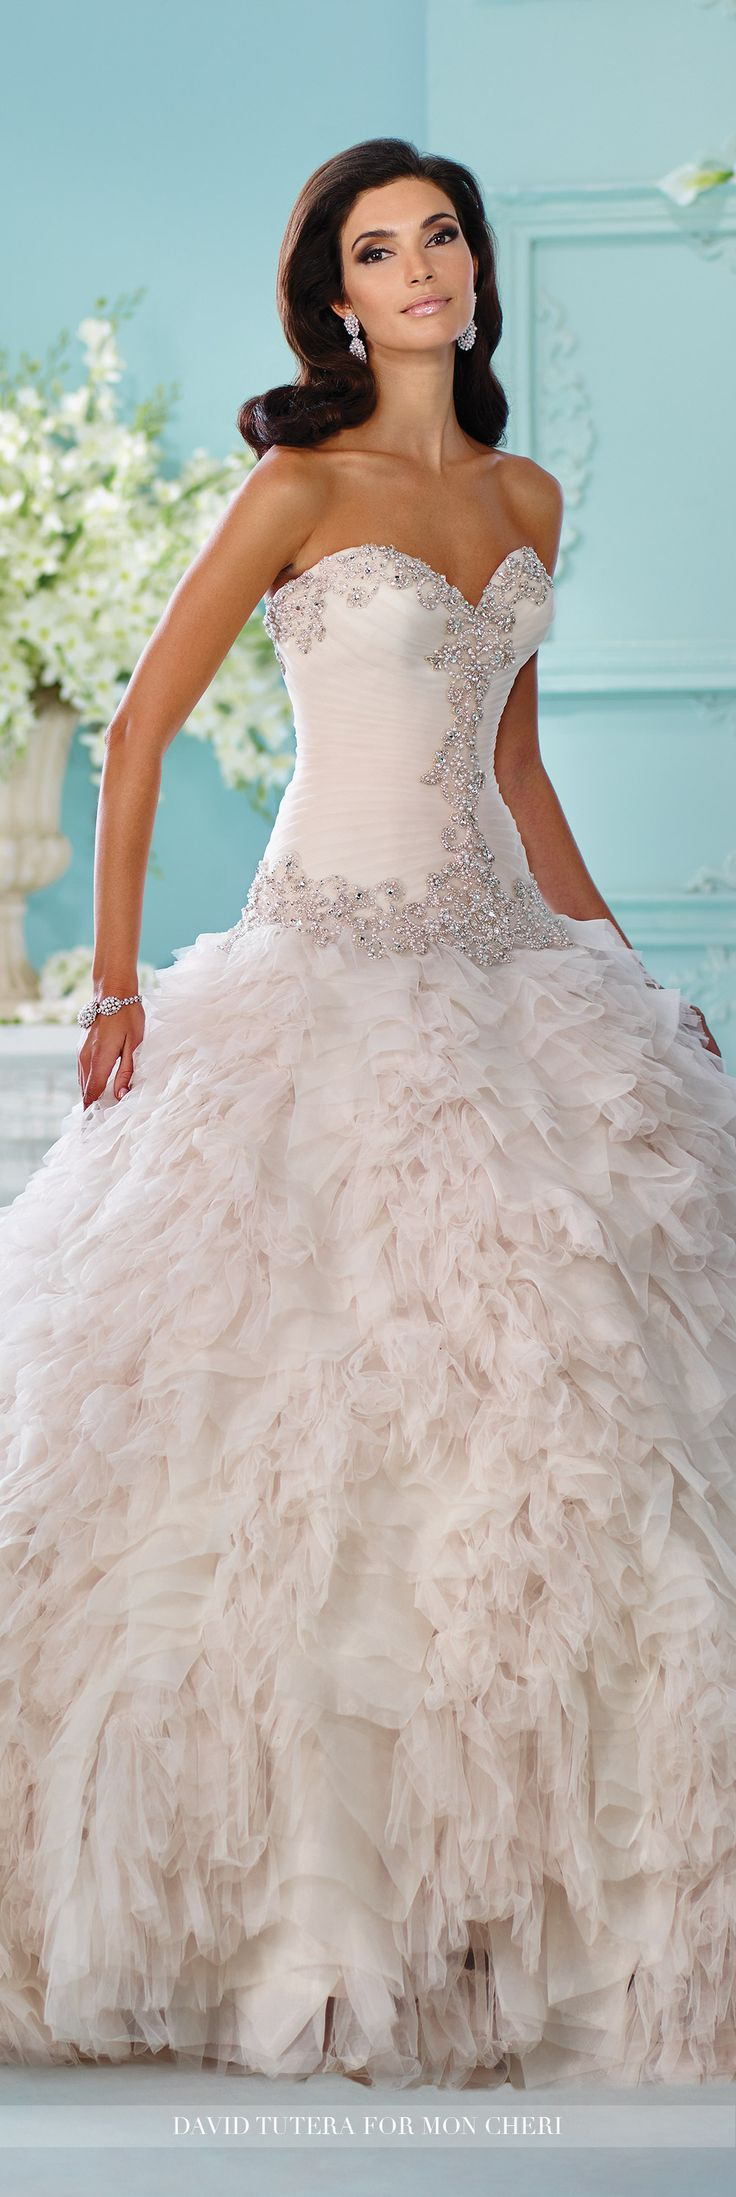 Superb Strapless Tulle u Organza Embroidered Ruffled Ball Gown Meena